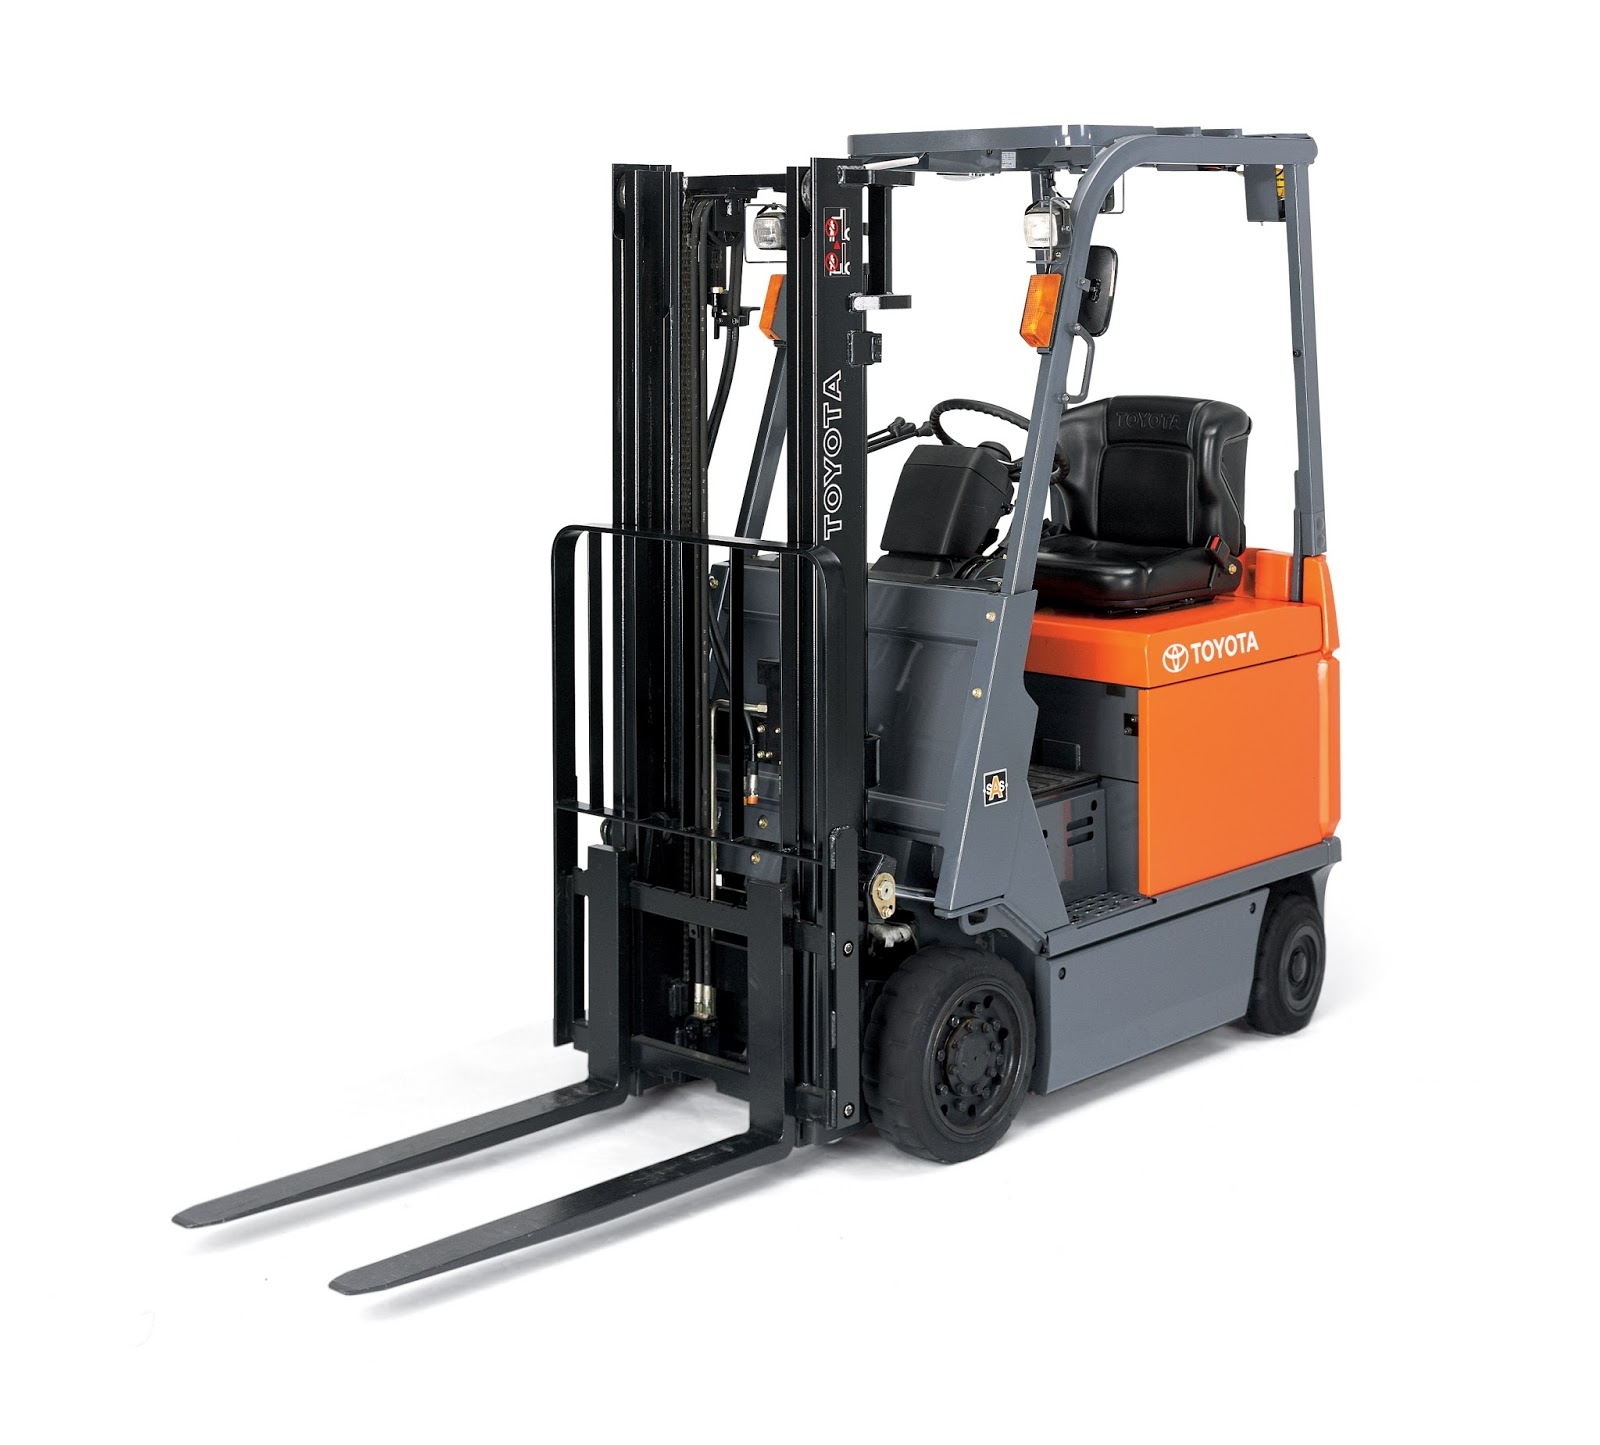 Electric Forklift Are Fueled By Large Heavy Batteries That Provide A Amount Of The Counter Weight On Lift These Lifts More Common Than